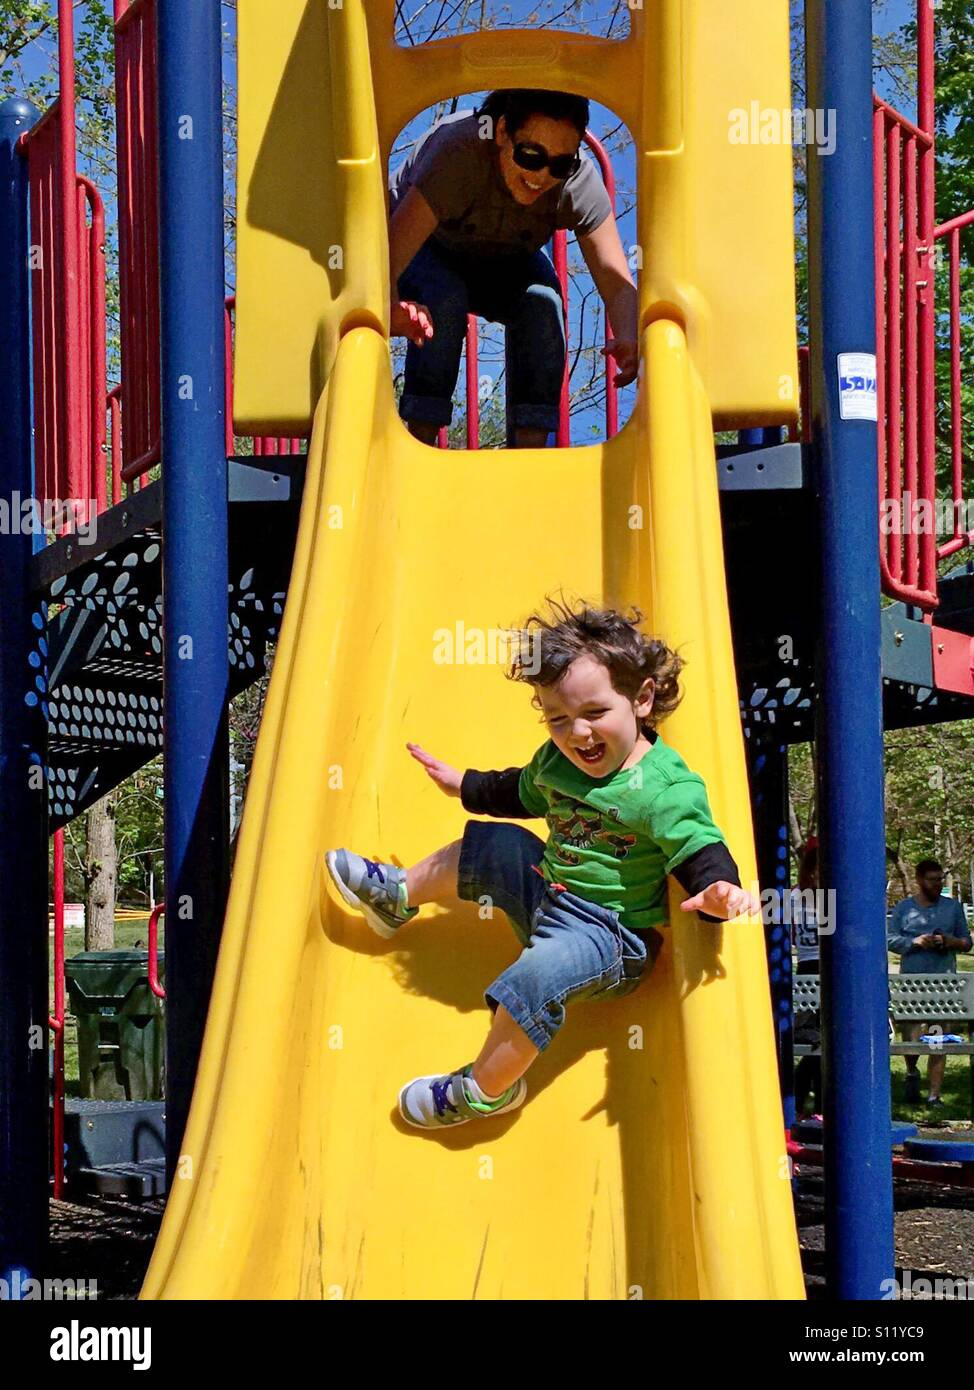 La mère et l'enfant s'amuser au parc Photo Stock